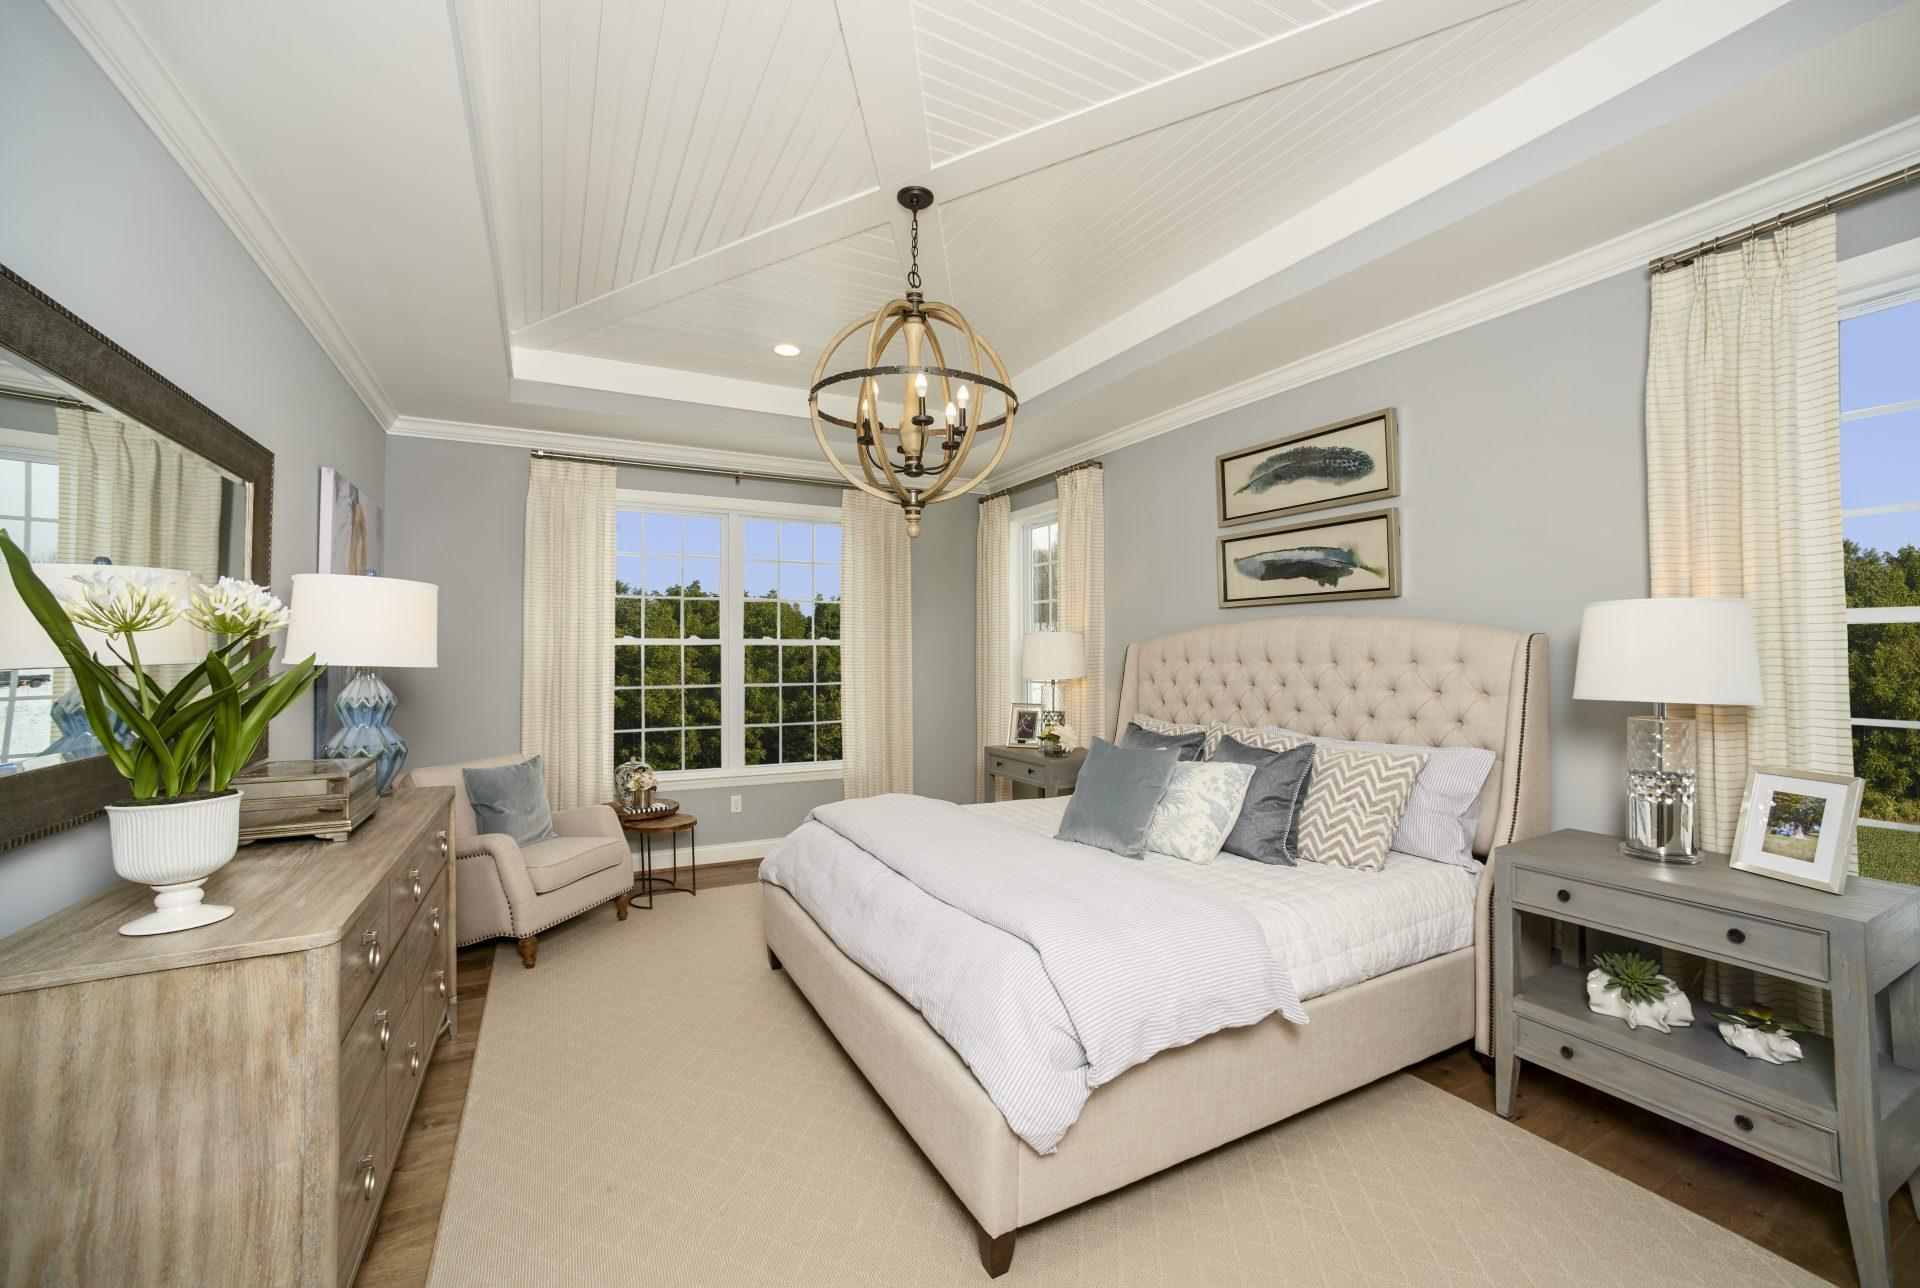 Bedroom featured in The Washington By Traditions of America in Philadelphia, PA